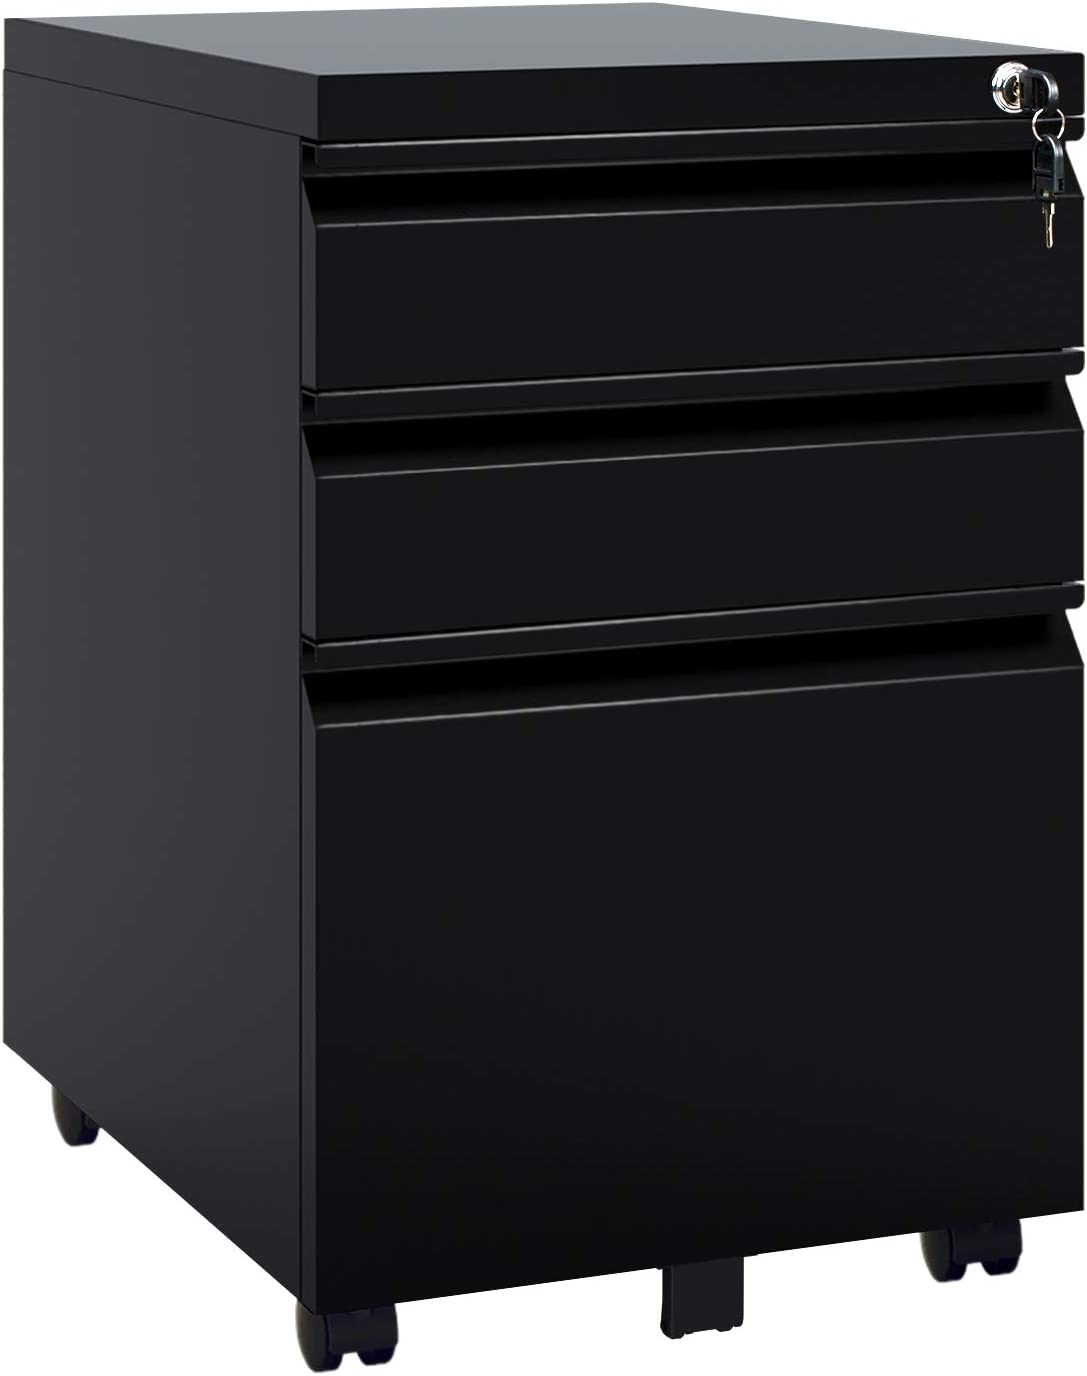 DEVAISE 3 Drawer Mobile File Cabinet with Lock, Metal Filing Cabinet Legal/Letter Size, Fully Assembled, Black